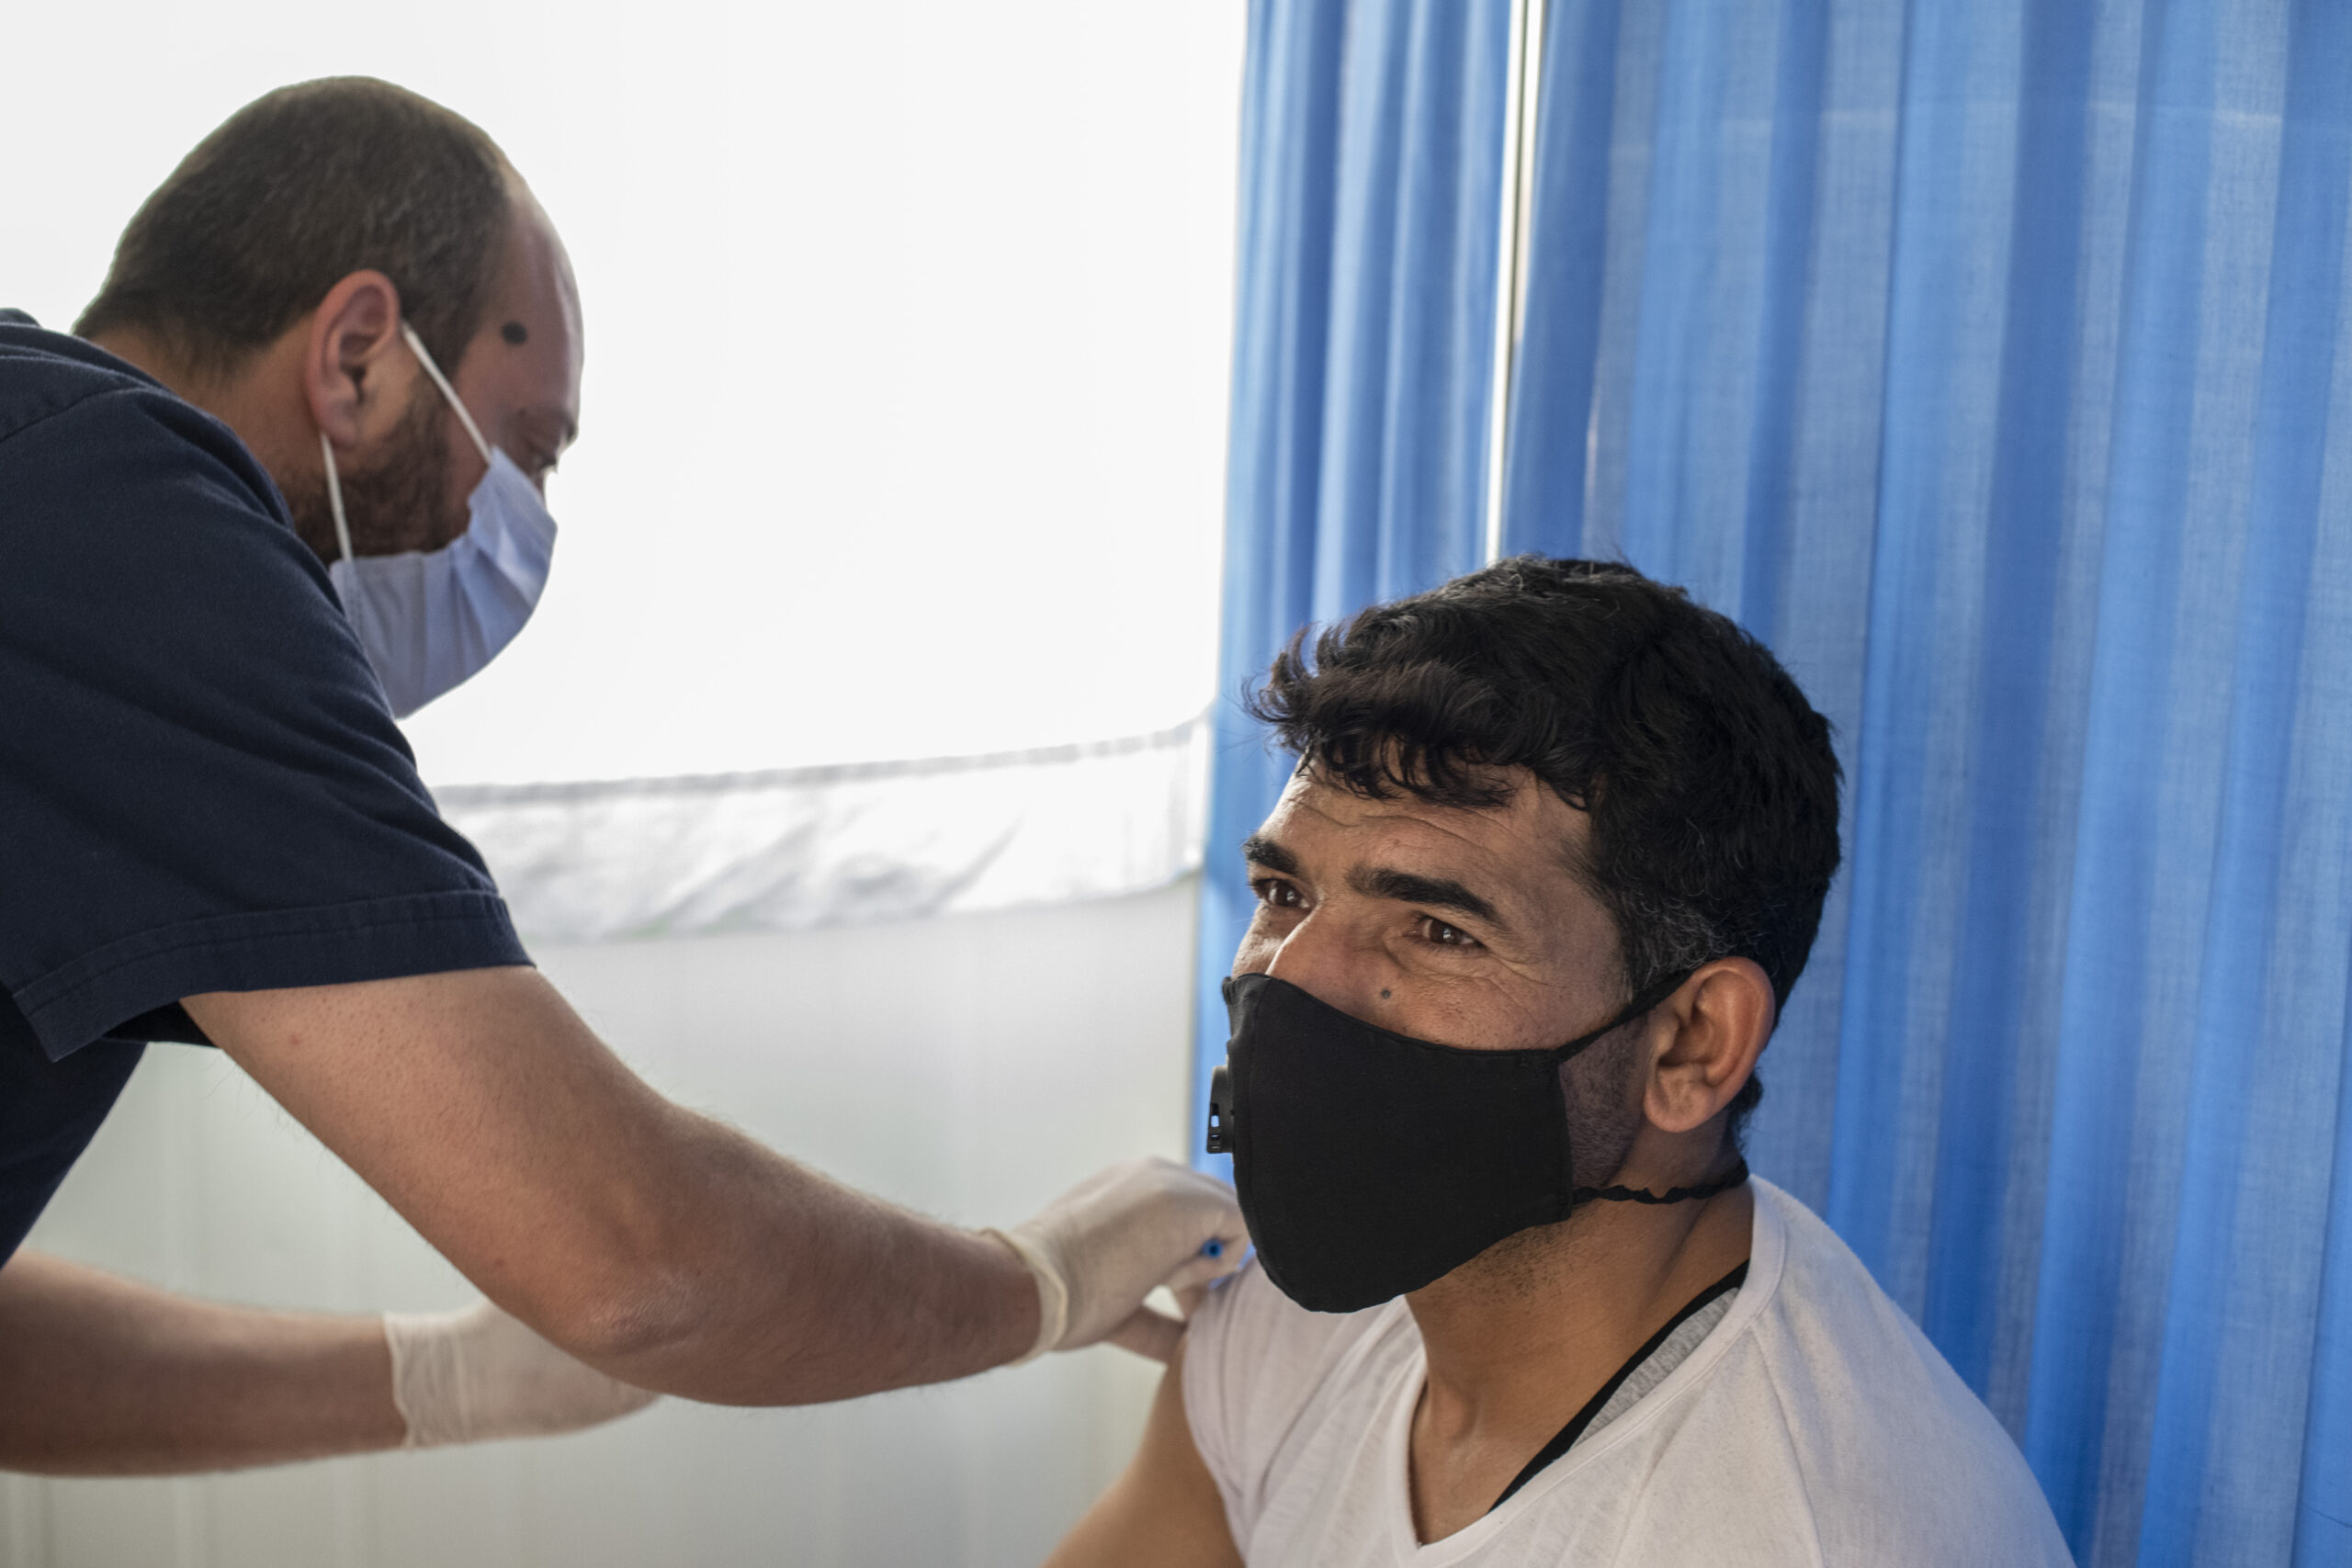 In Jordan, we are continuing to work with the Ministry of Health to provide vaccination services in Azraq and Zaatari refugee camps.